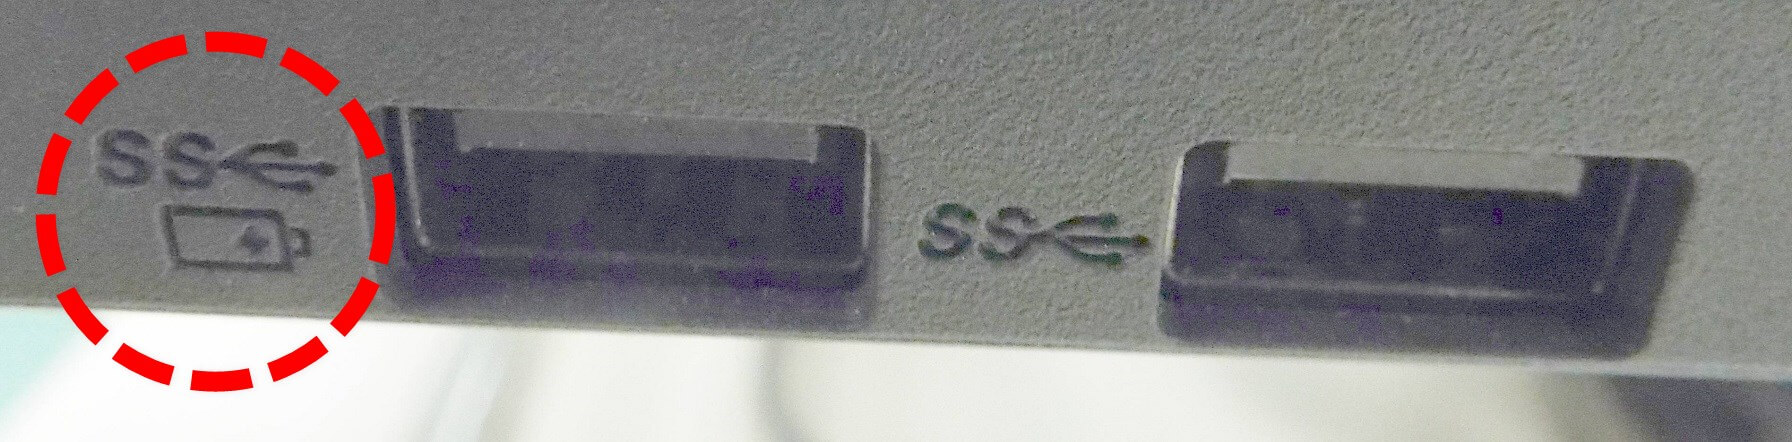 usb-port-with-battery-symbol